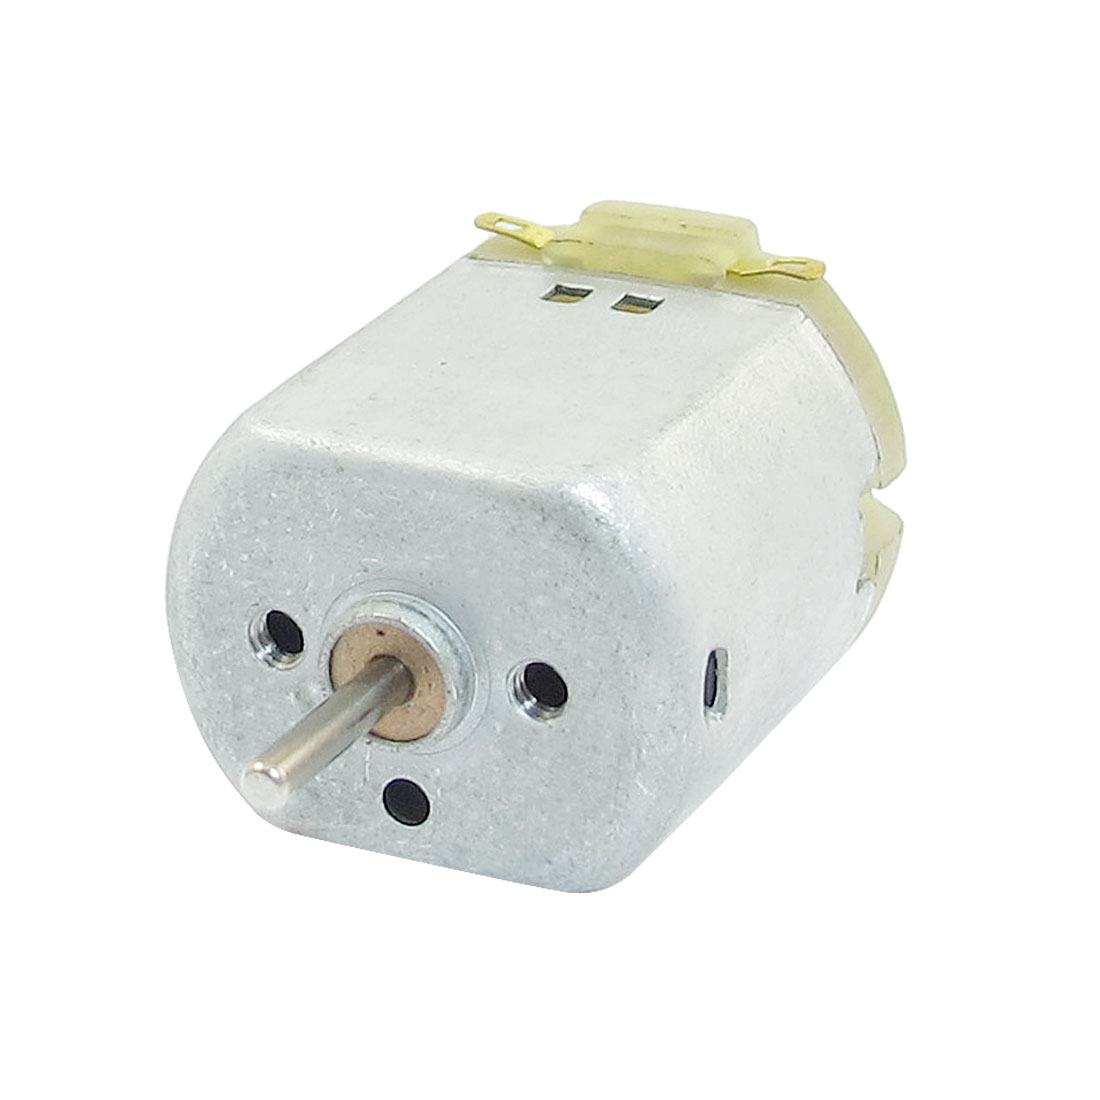 2200RPM 3.7V High Torque Magnetic Electric Mini DC Motor